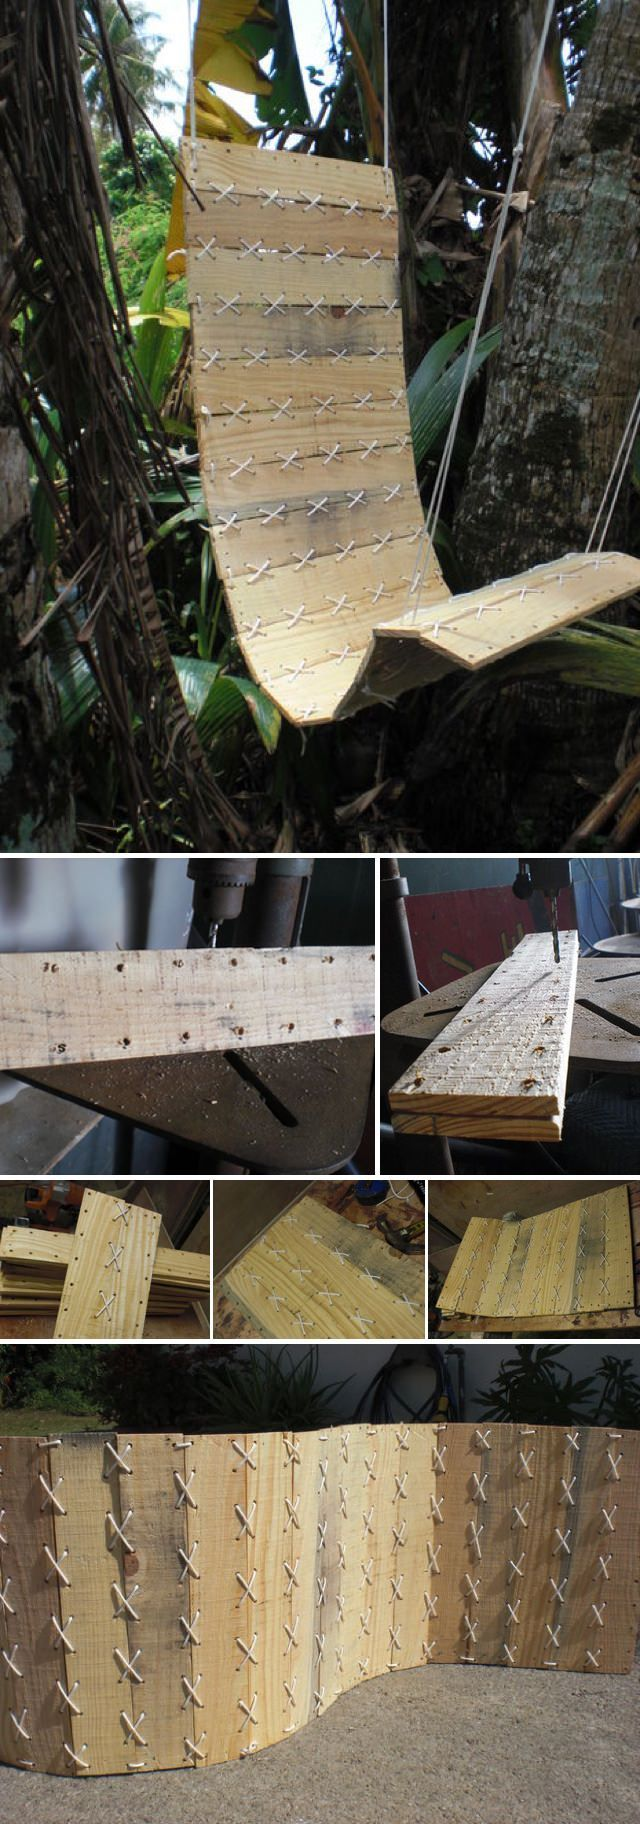 DIY Pallet proejcts That Are Easy to Make and Sell ! DIY Pallet Changing Chair